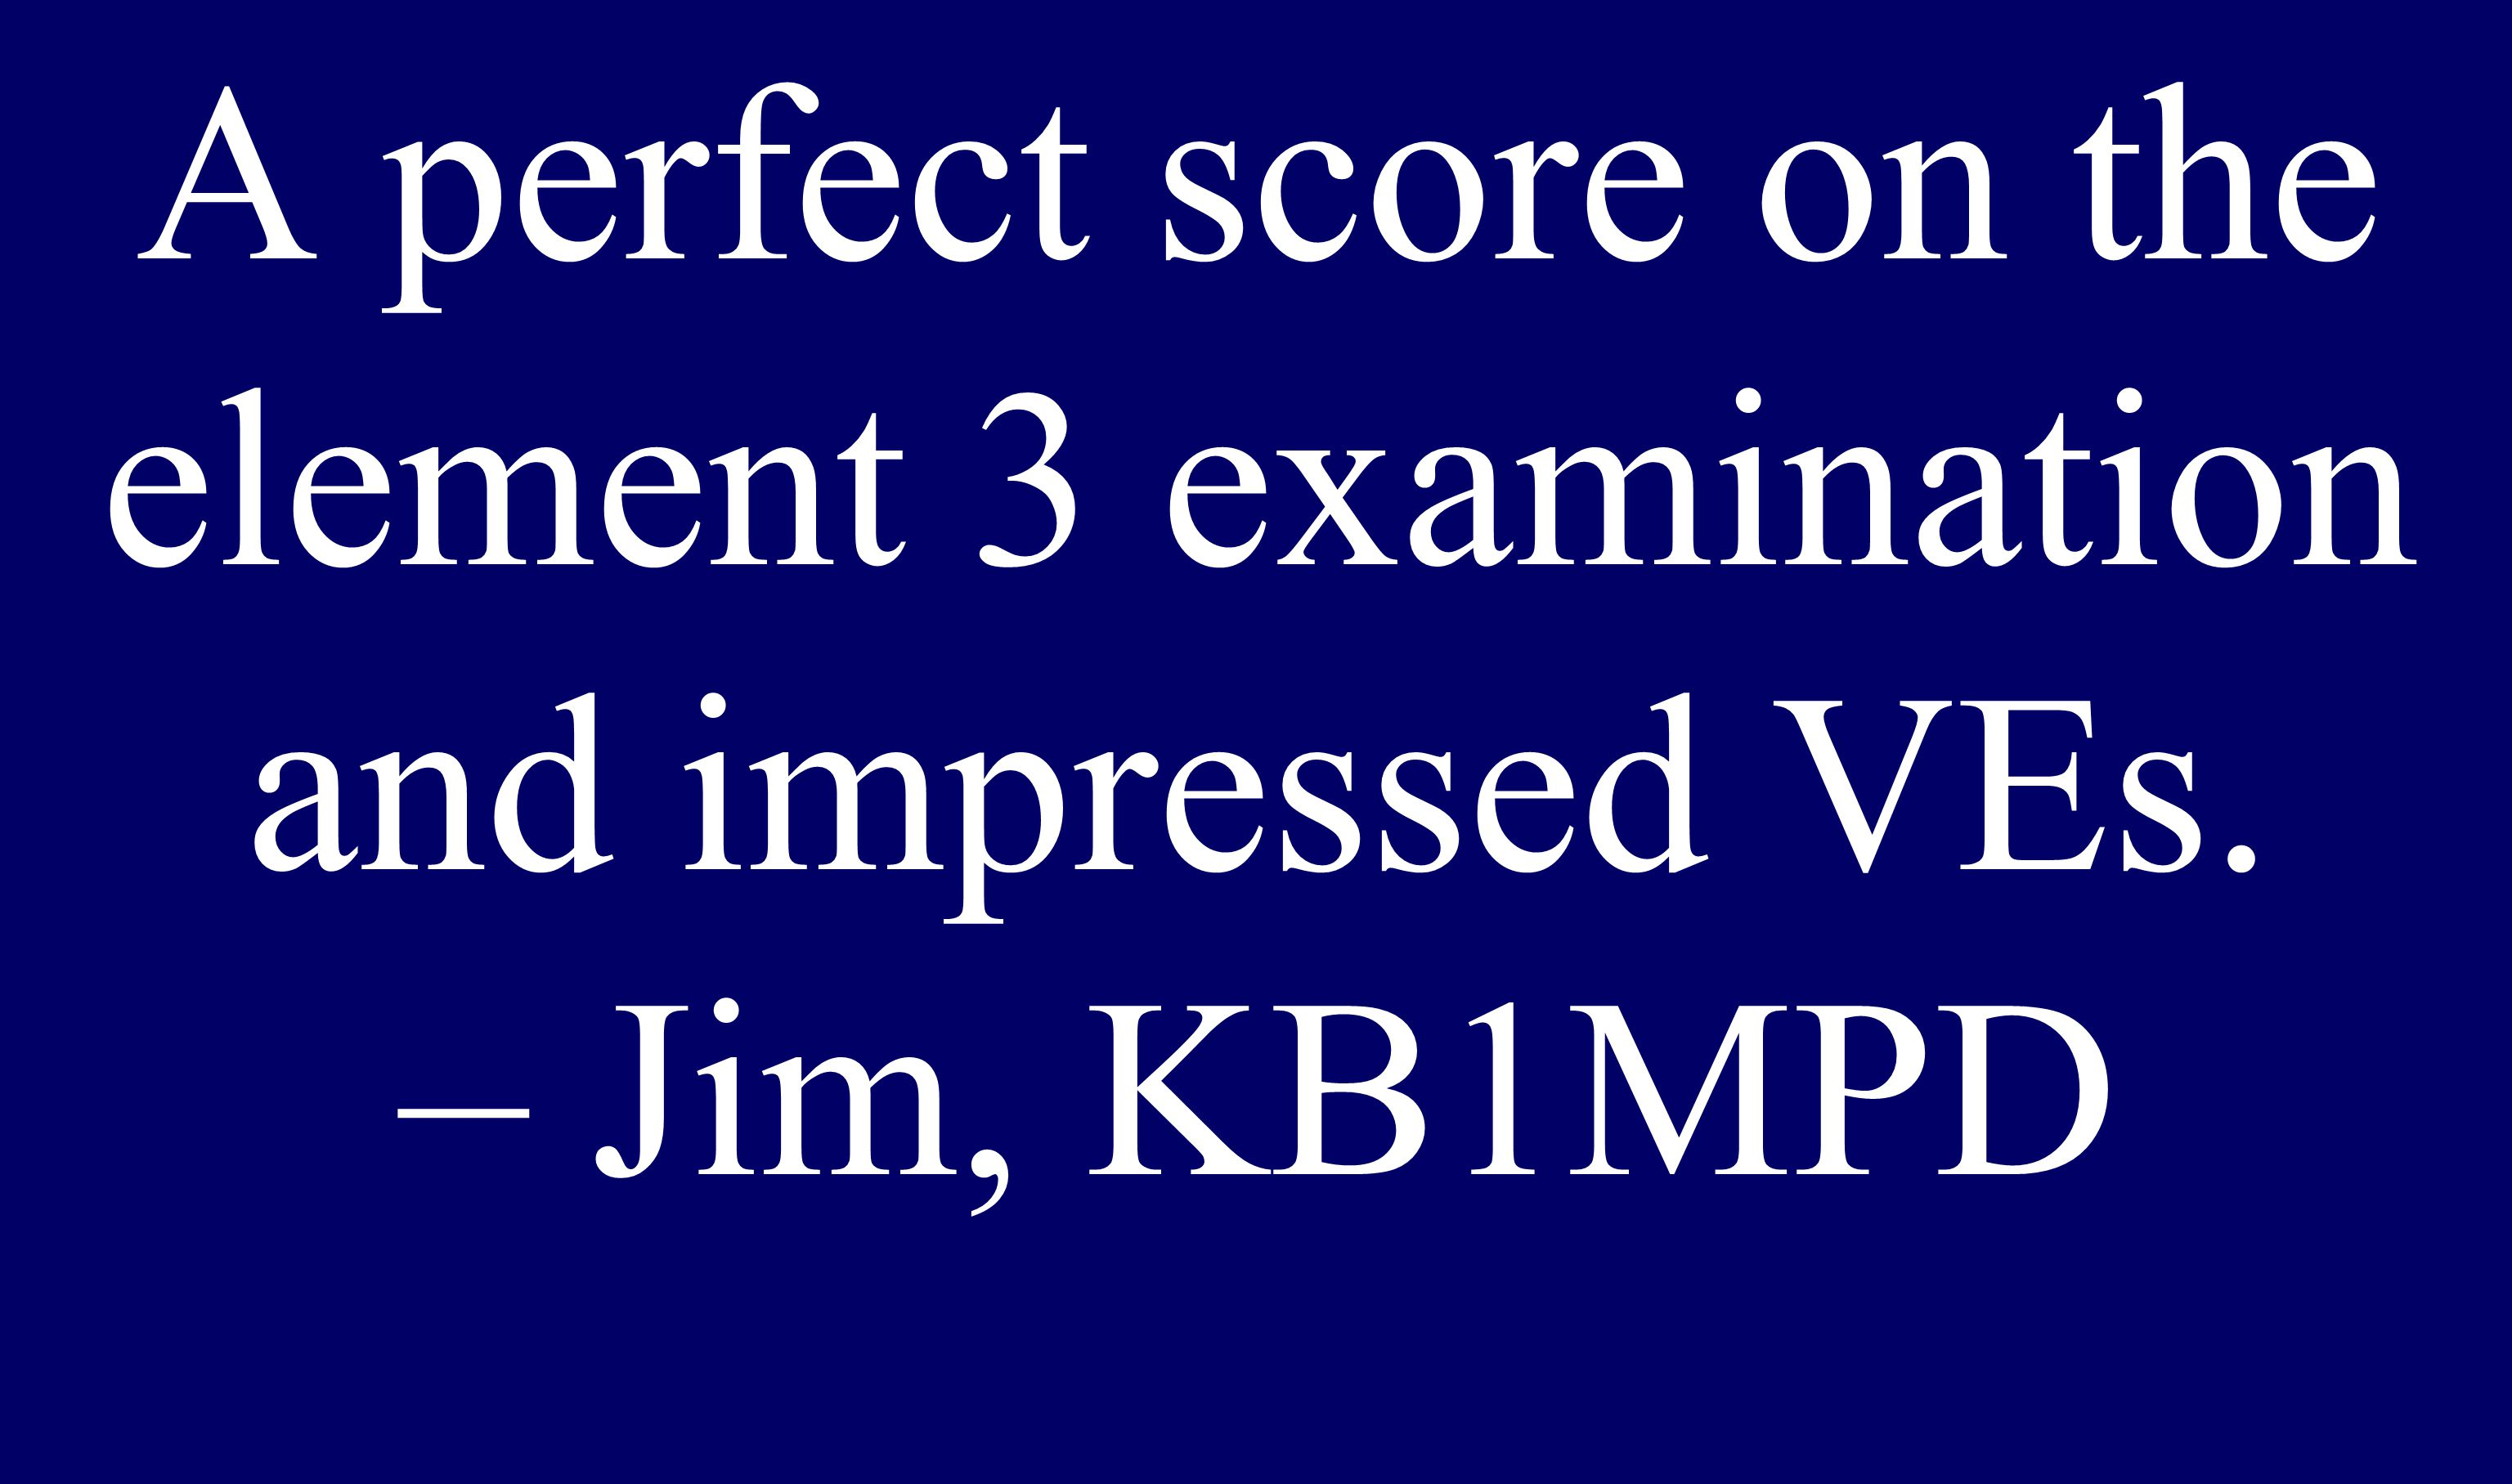 Scored 100% A perfect score on the element 3 examination and impressed VEs. – Jim, KB1MPD